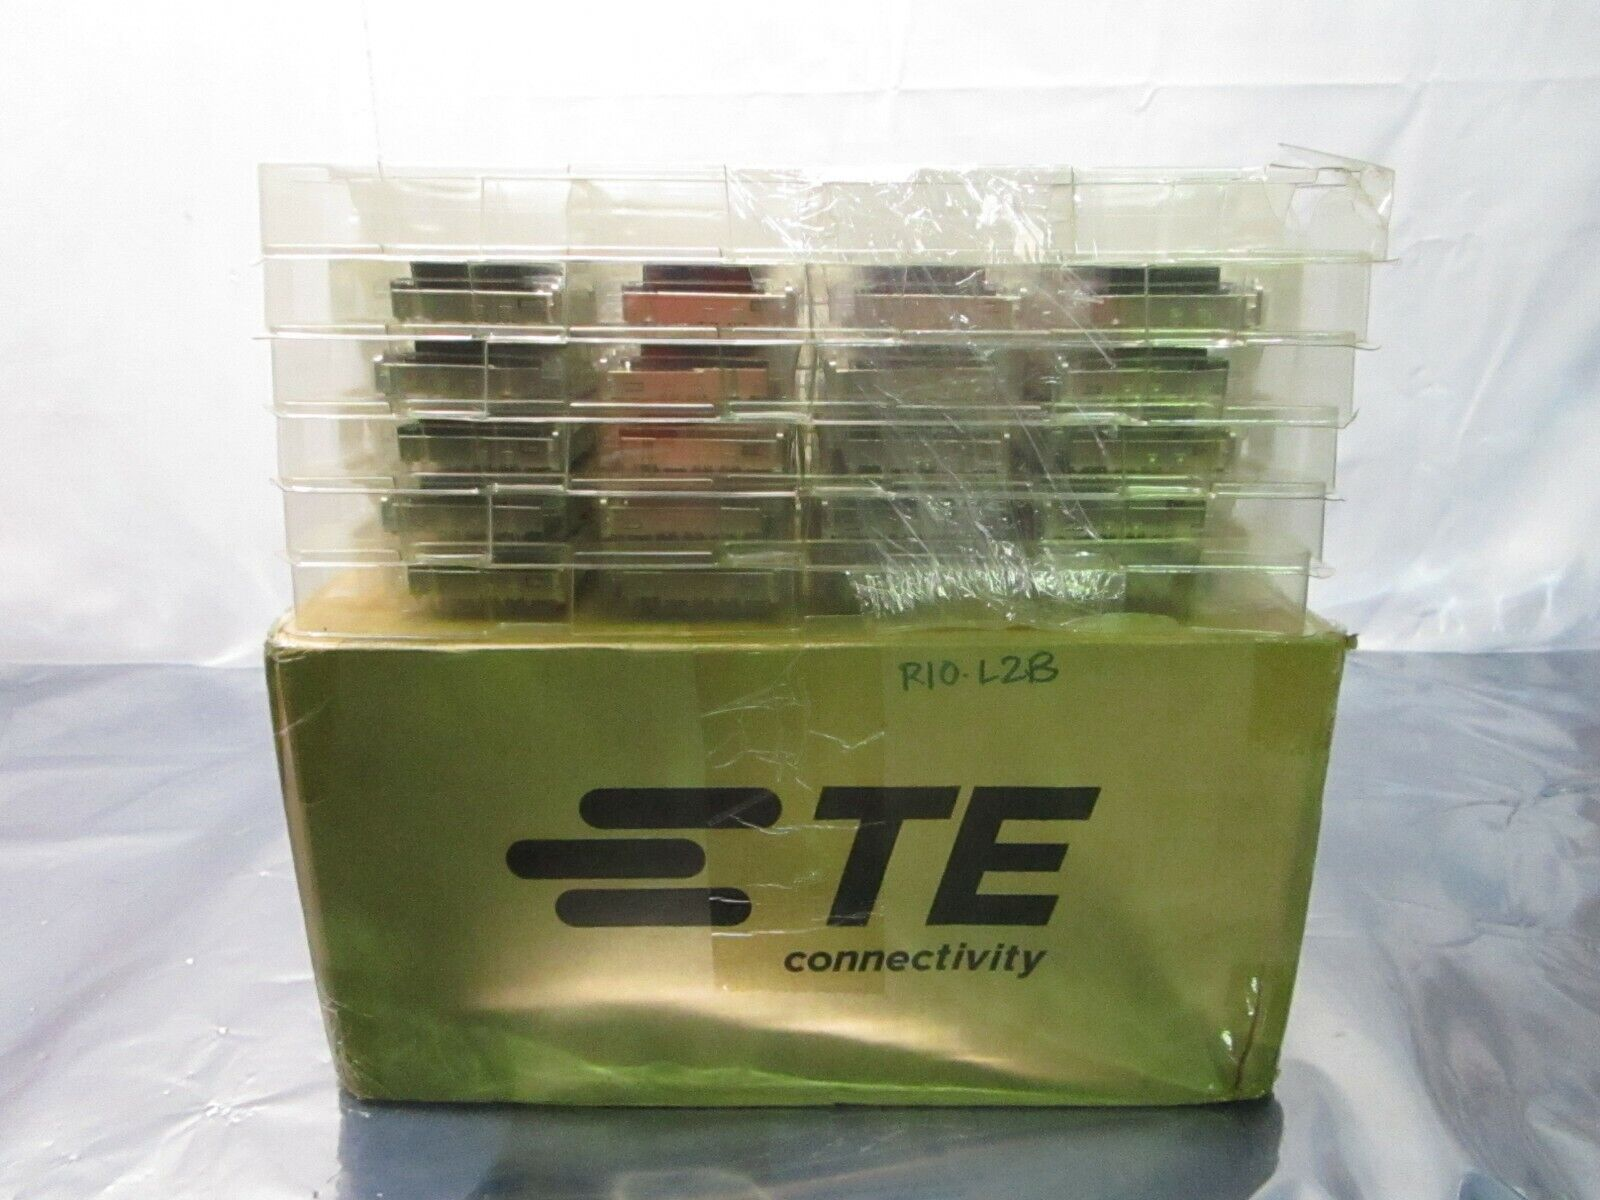 1 Lot of 40 TE connectivity AMP Brand 2170551-1 1X6 CAGE ASSEMBLY, 102310